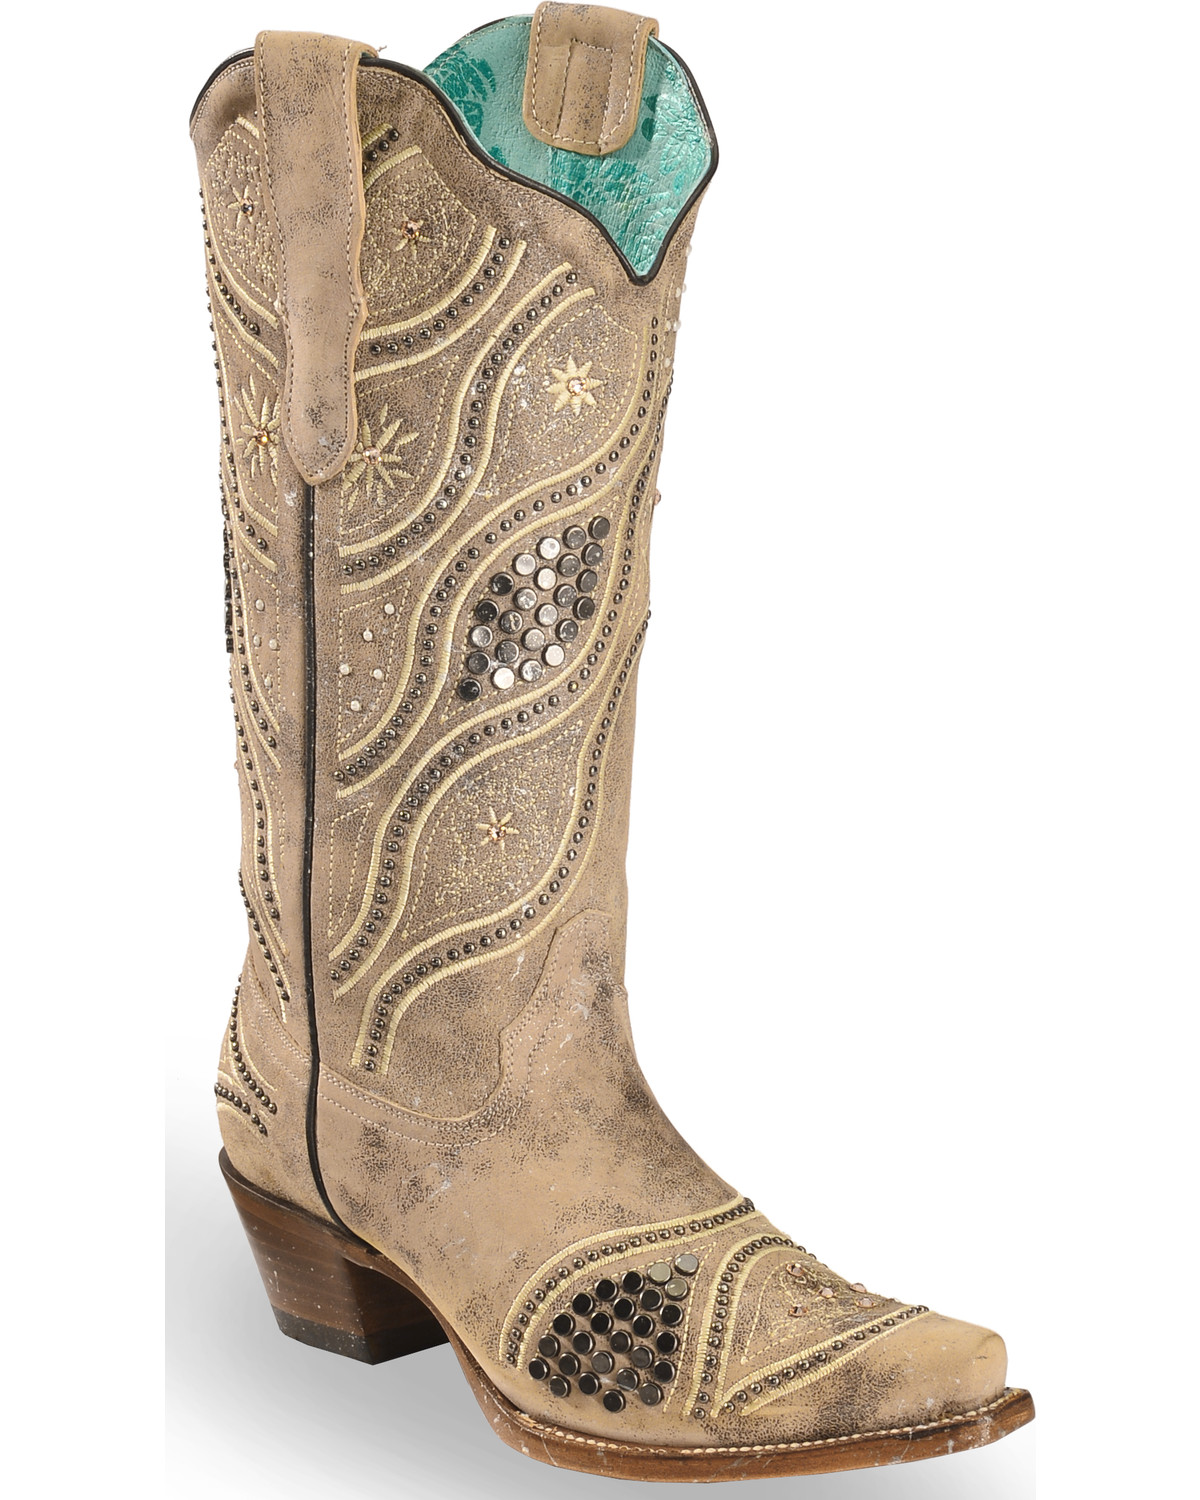 fa3717d6e61 Corral Women s Embroidered Studded Bridal Cowgirl Boots - Snip Toe ...